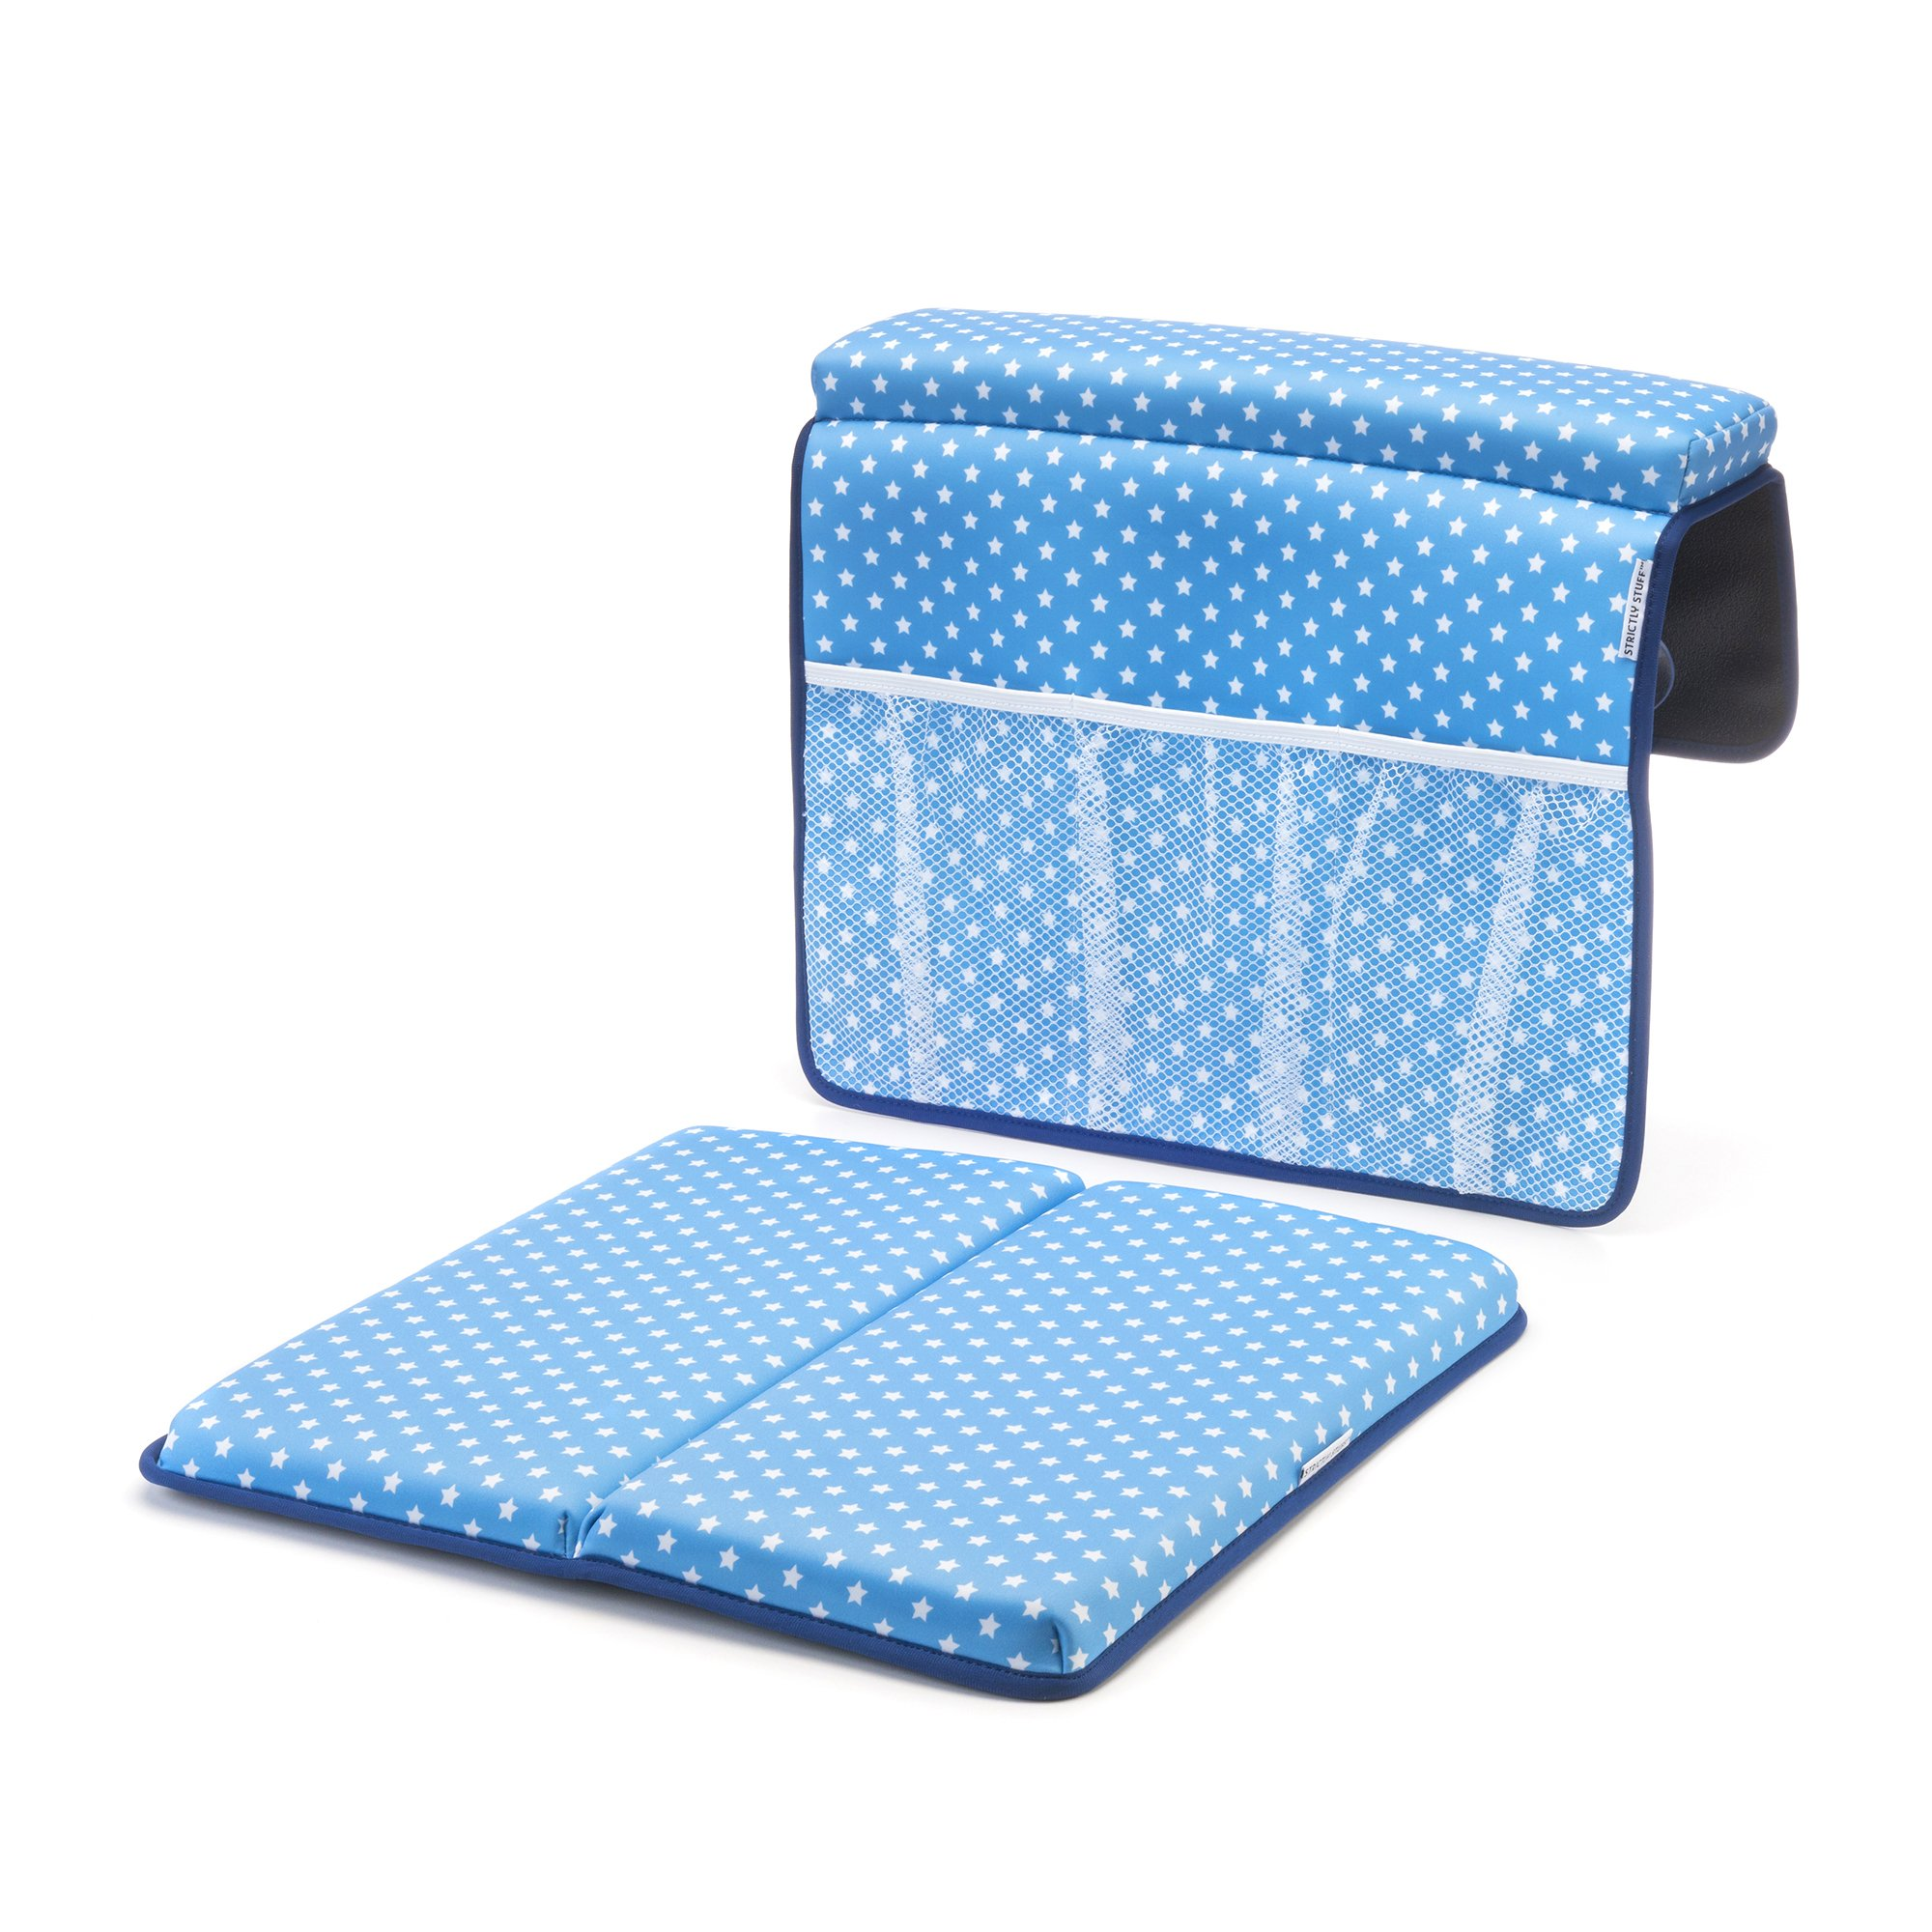 Strictly Stuff Baby Bath Kneeler and Elbow Pad (Blue). Thick, Soft Knee Padding. Durable Neoprene Material and Design. Non-Slip Backing with Suction Cups. Fits All tubs. Three Great Color Patterns.